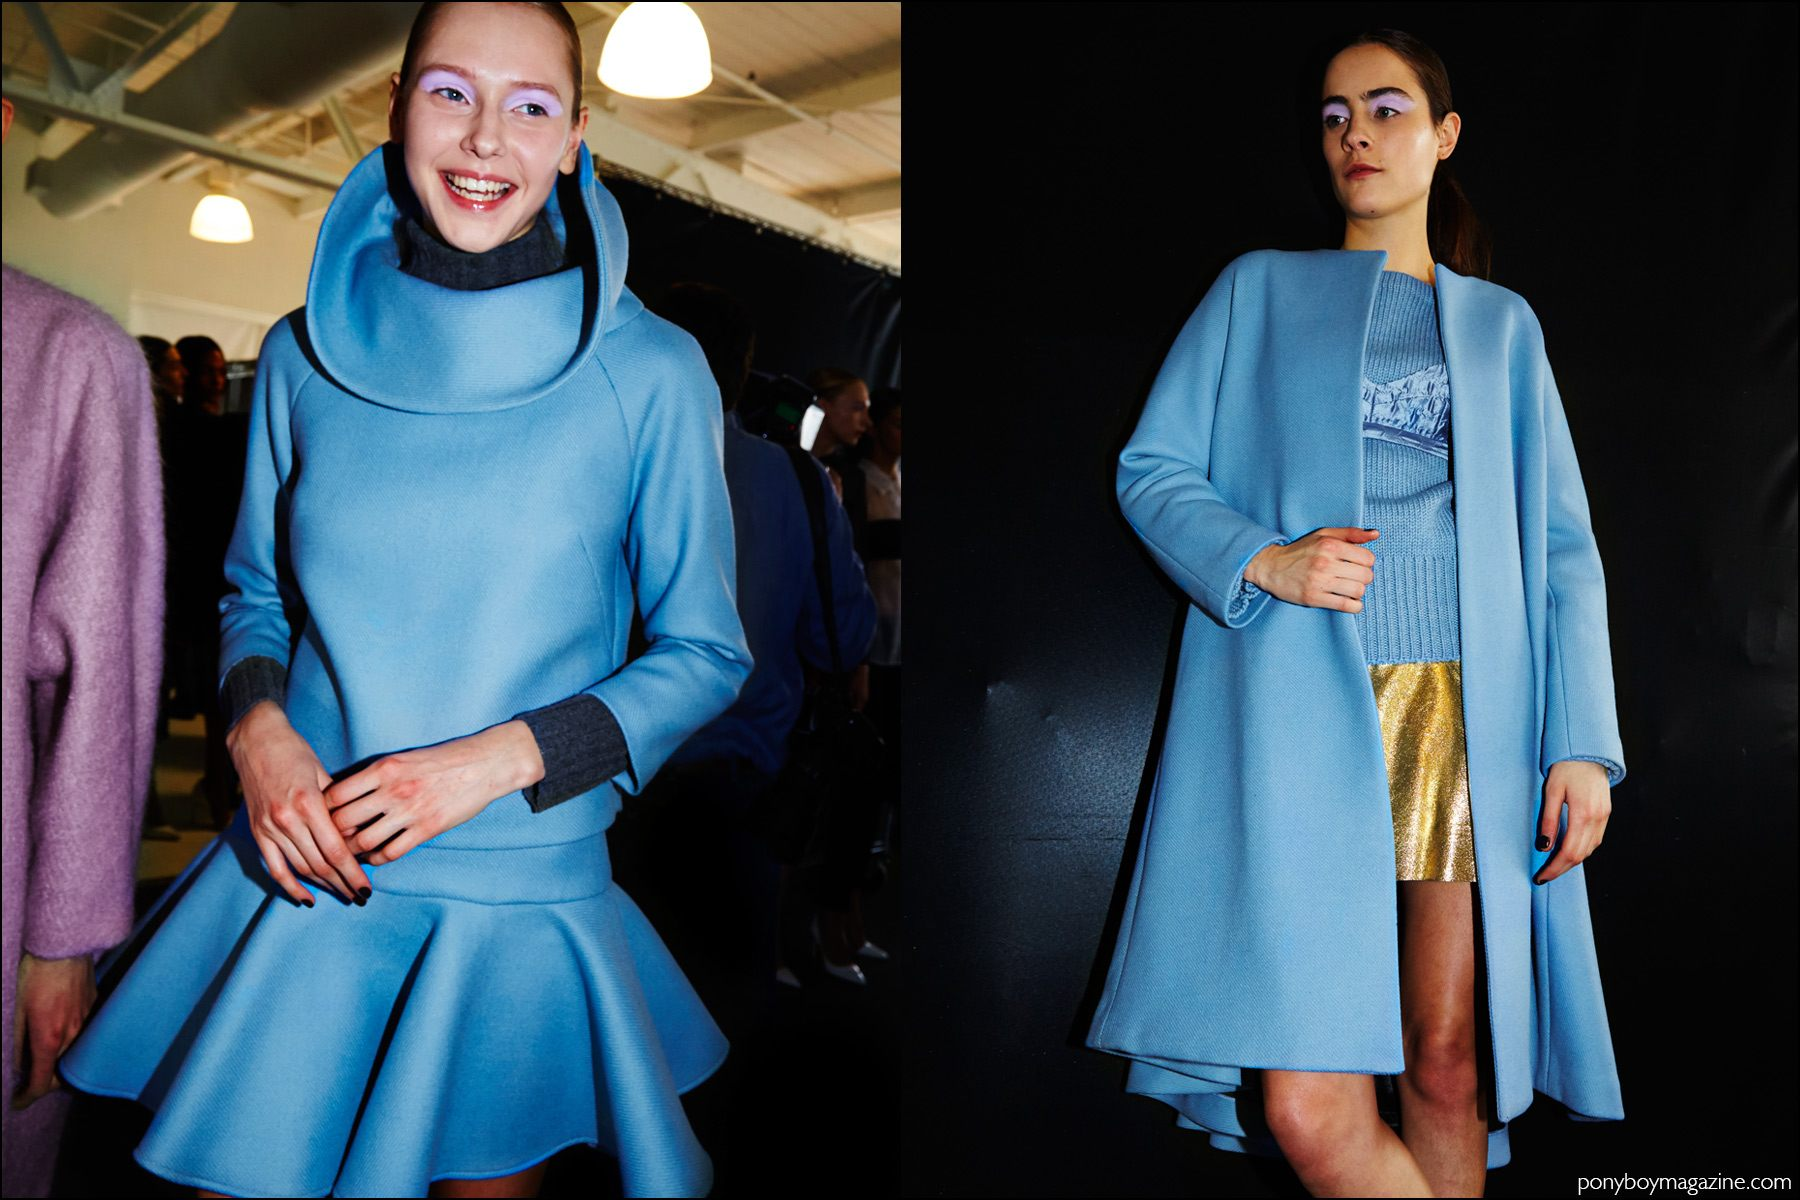 Baby blue Fall/Winter womenswear looks for 2016, snapped by Alexander Thompson for Ponyboy magazine at the Milly show in New York City.